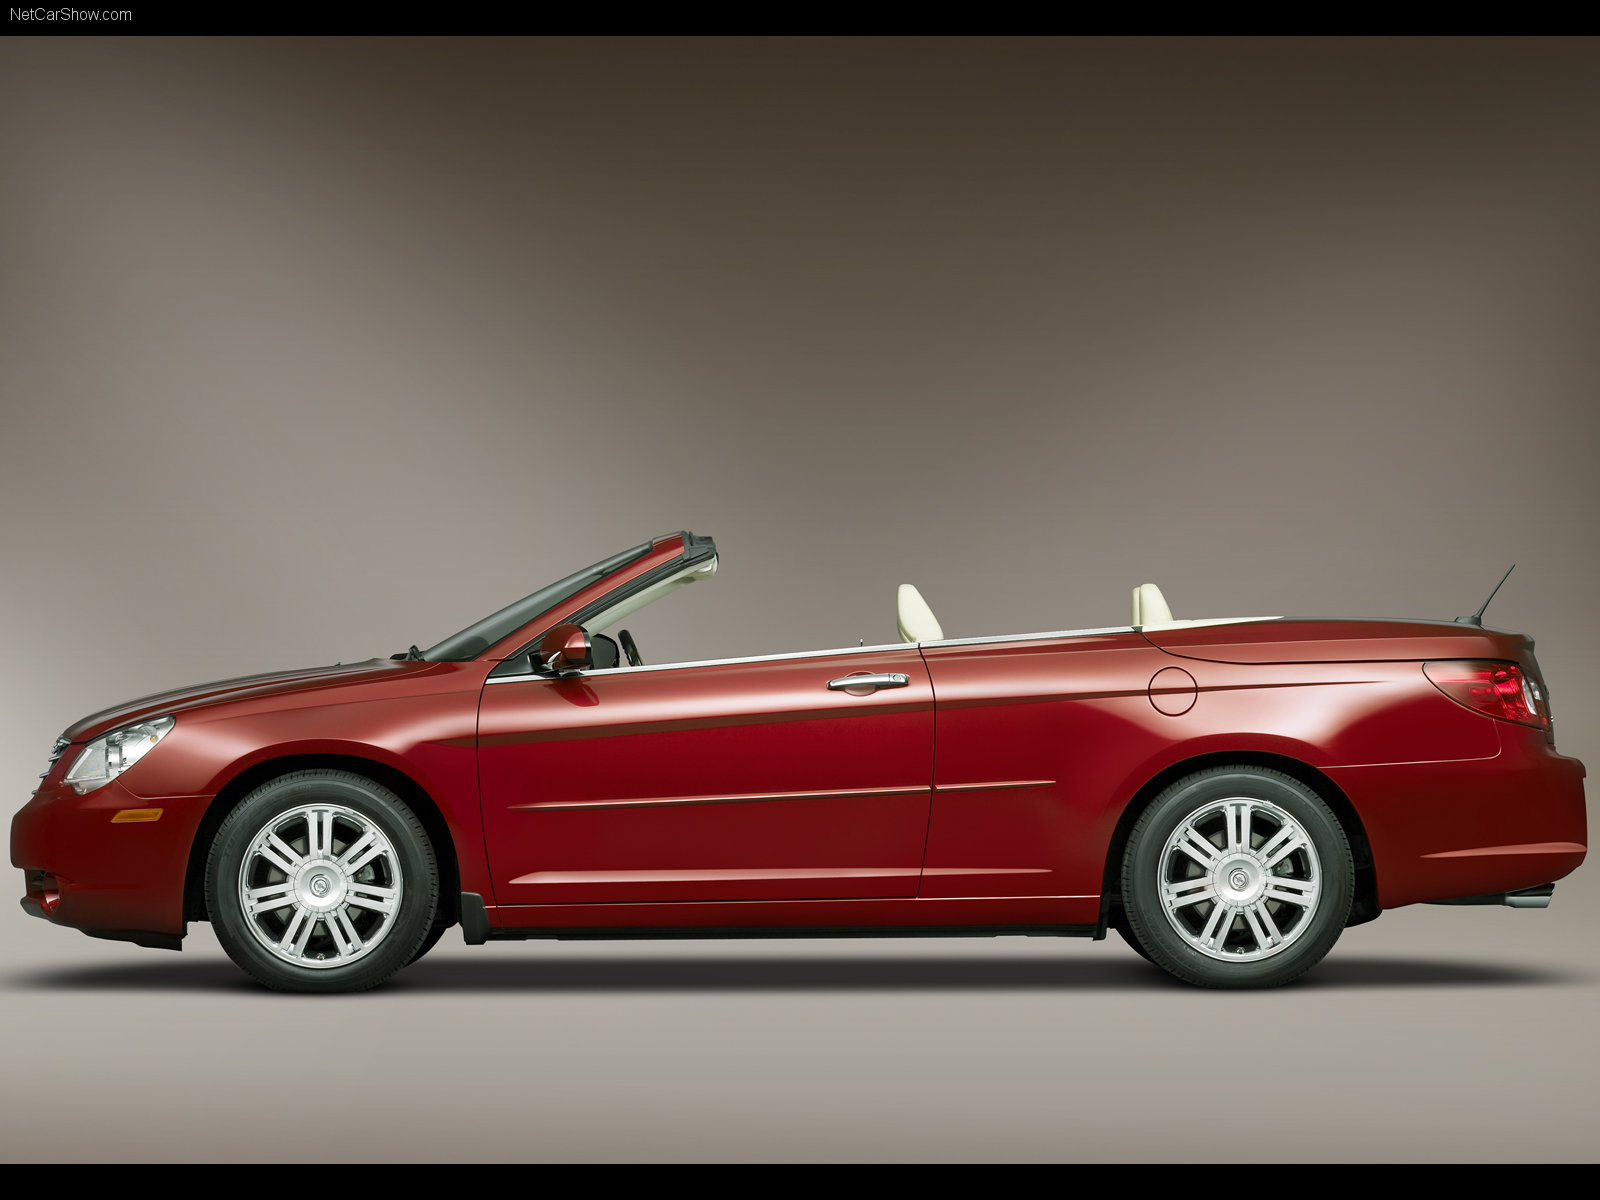 Chrysler Sebring Convertible photo 39653